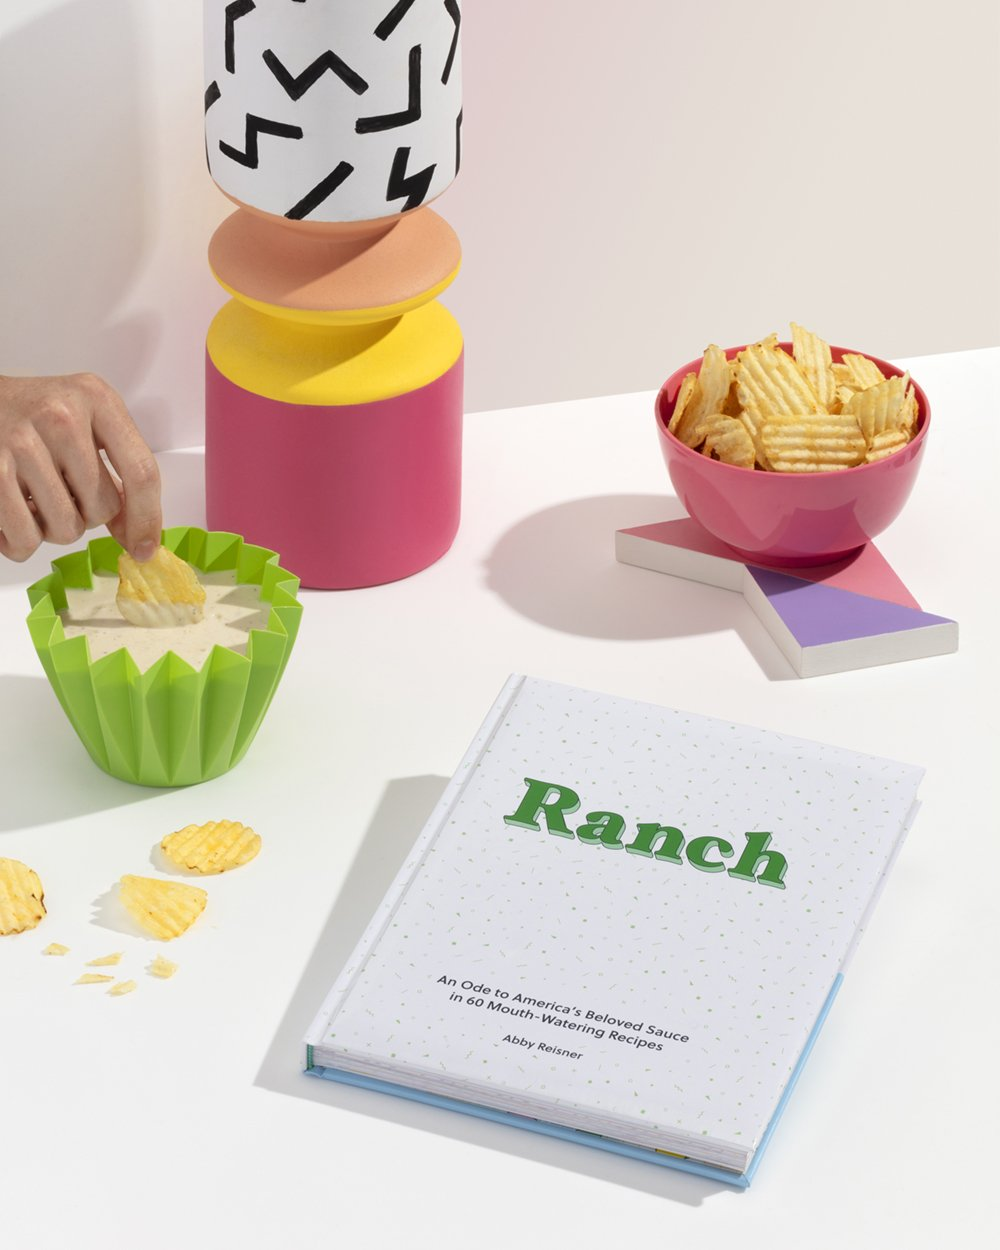 Introducing the RANCH Cookbook